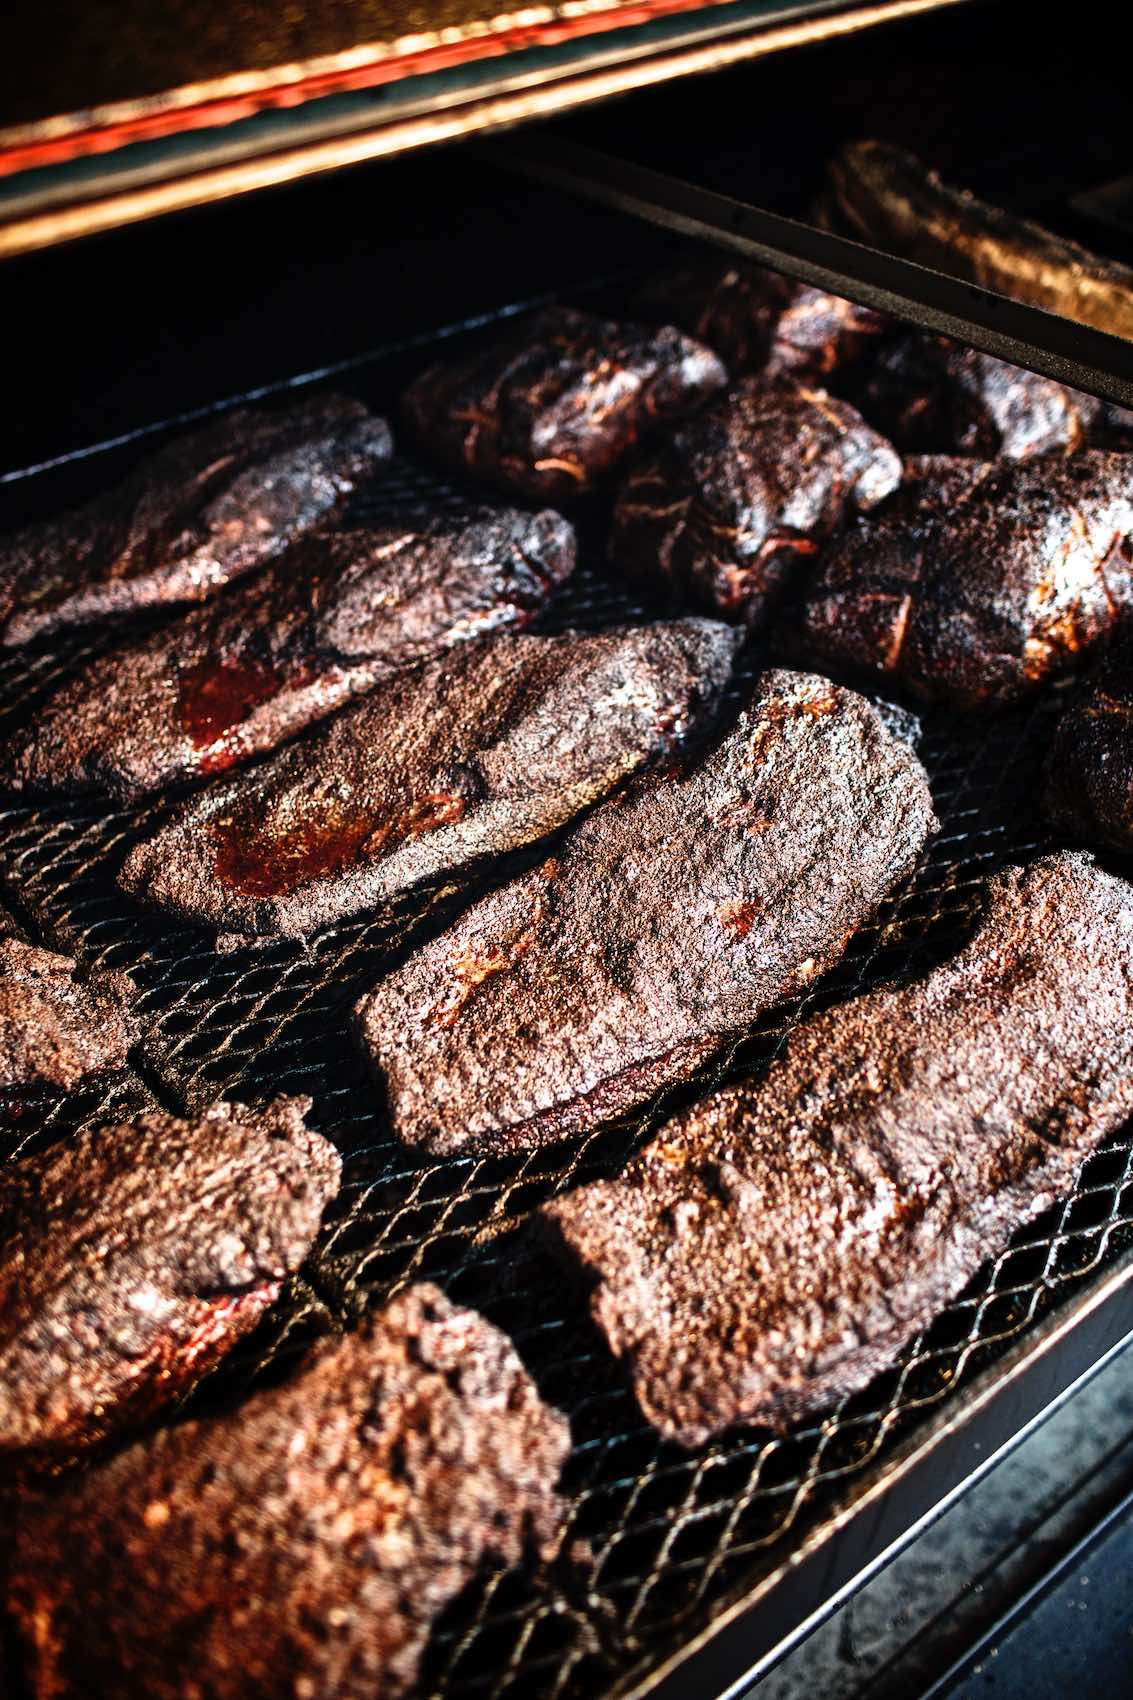 Jody Horton Photography - Barbecued meats cooking on grill.